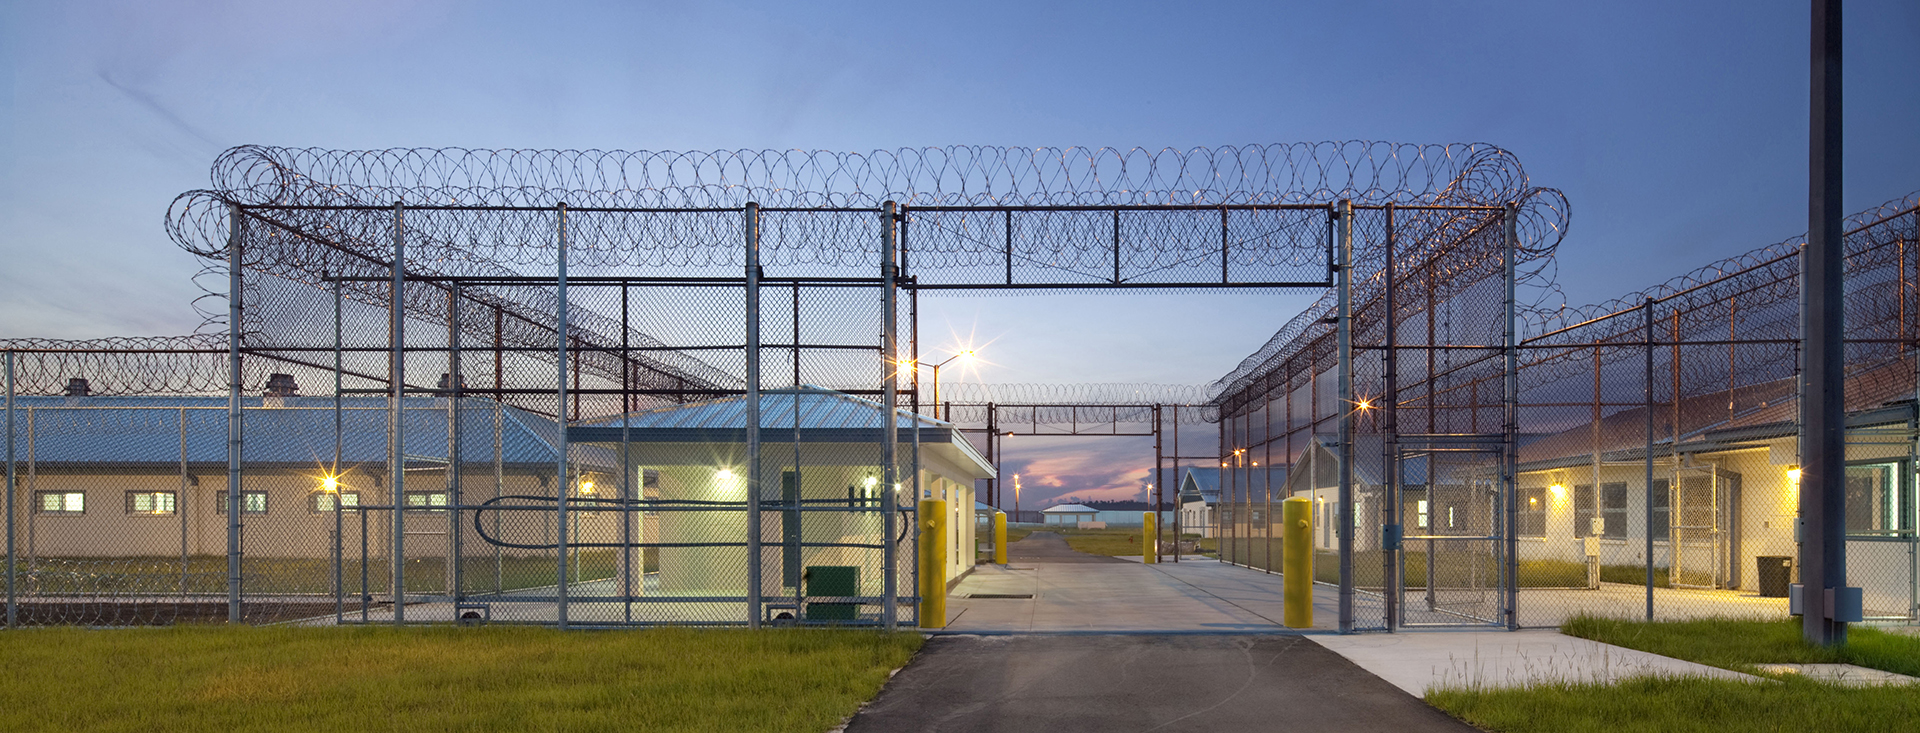 Image result for okeechobee correctional institution